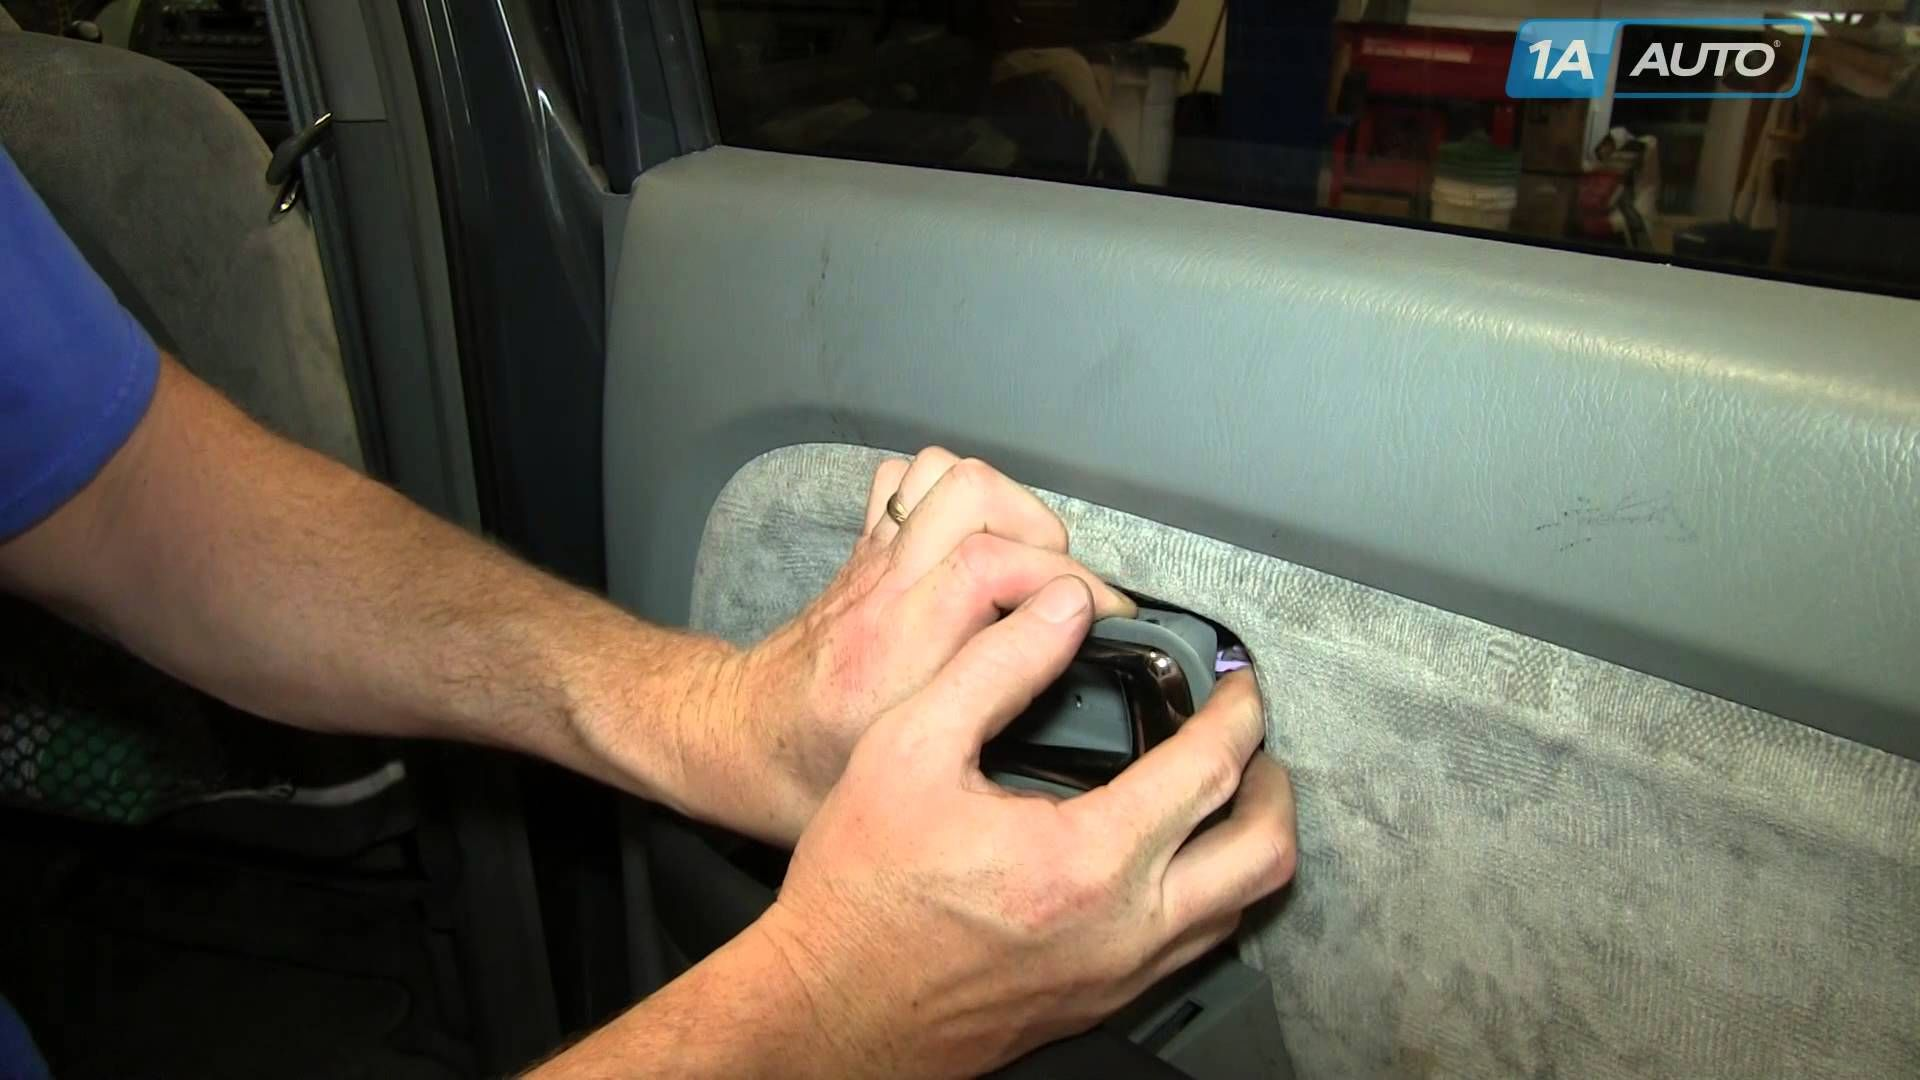 How To Remove Install Rear Door Panel Honda Pilot 2003 08 Honda Pilot How To Remove Honda